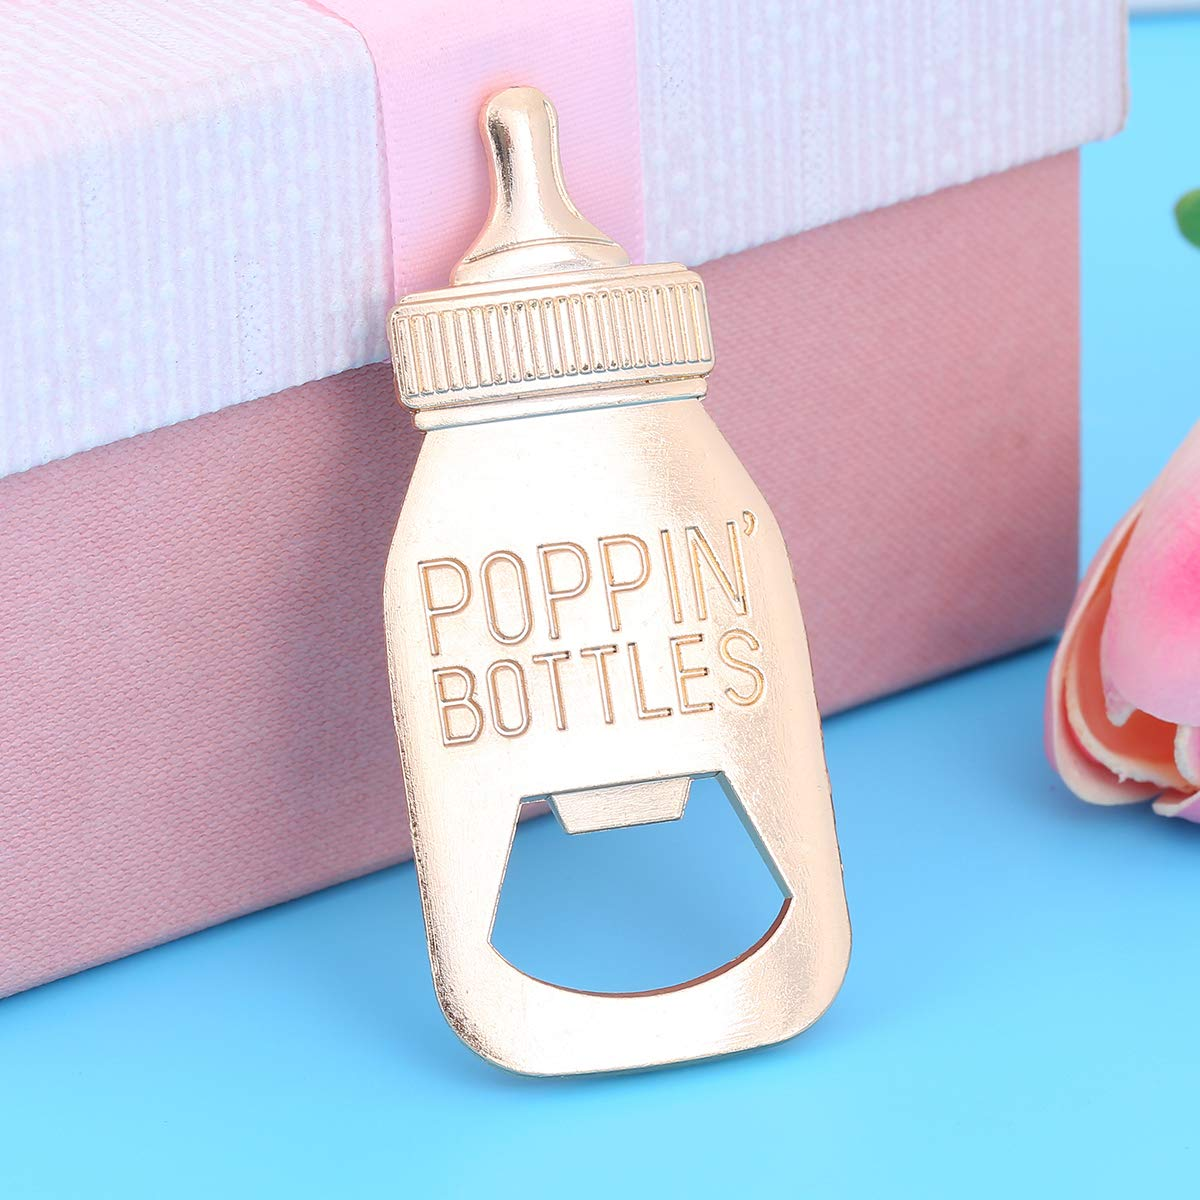 24 pcs Baby Shower Return Gifts for Guest Supplies Poppin Baby Bottle Shaped Bottle Opener Wedding Favor with Exquisite Packaging Party Souvenirs Gift Decorations by WeddParty (Blue 24pcs) by WeddPtyFr (Image #6)